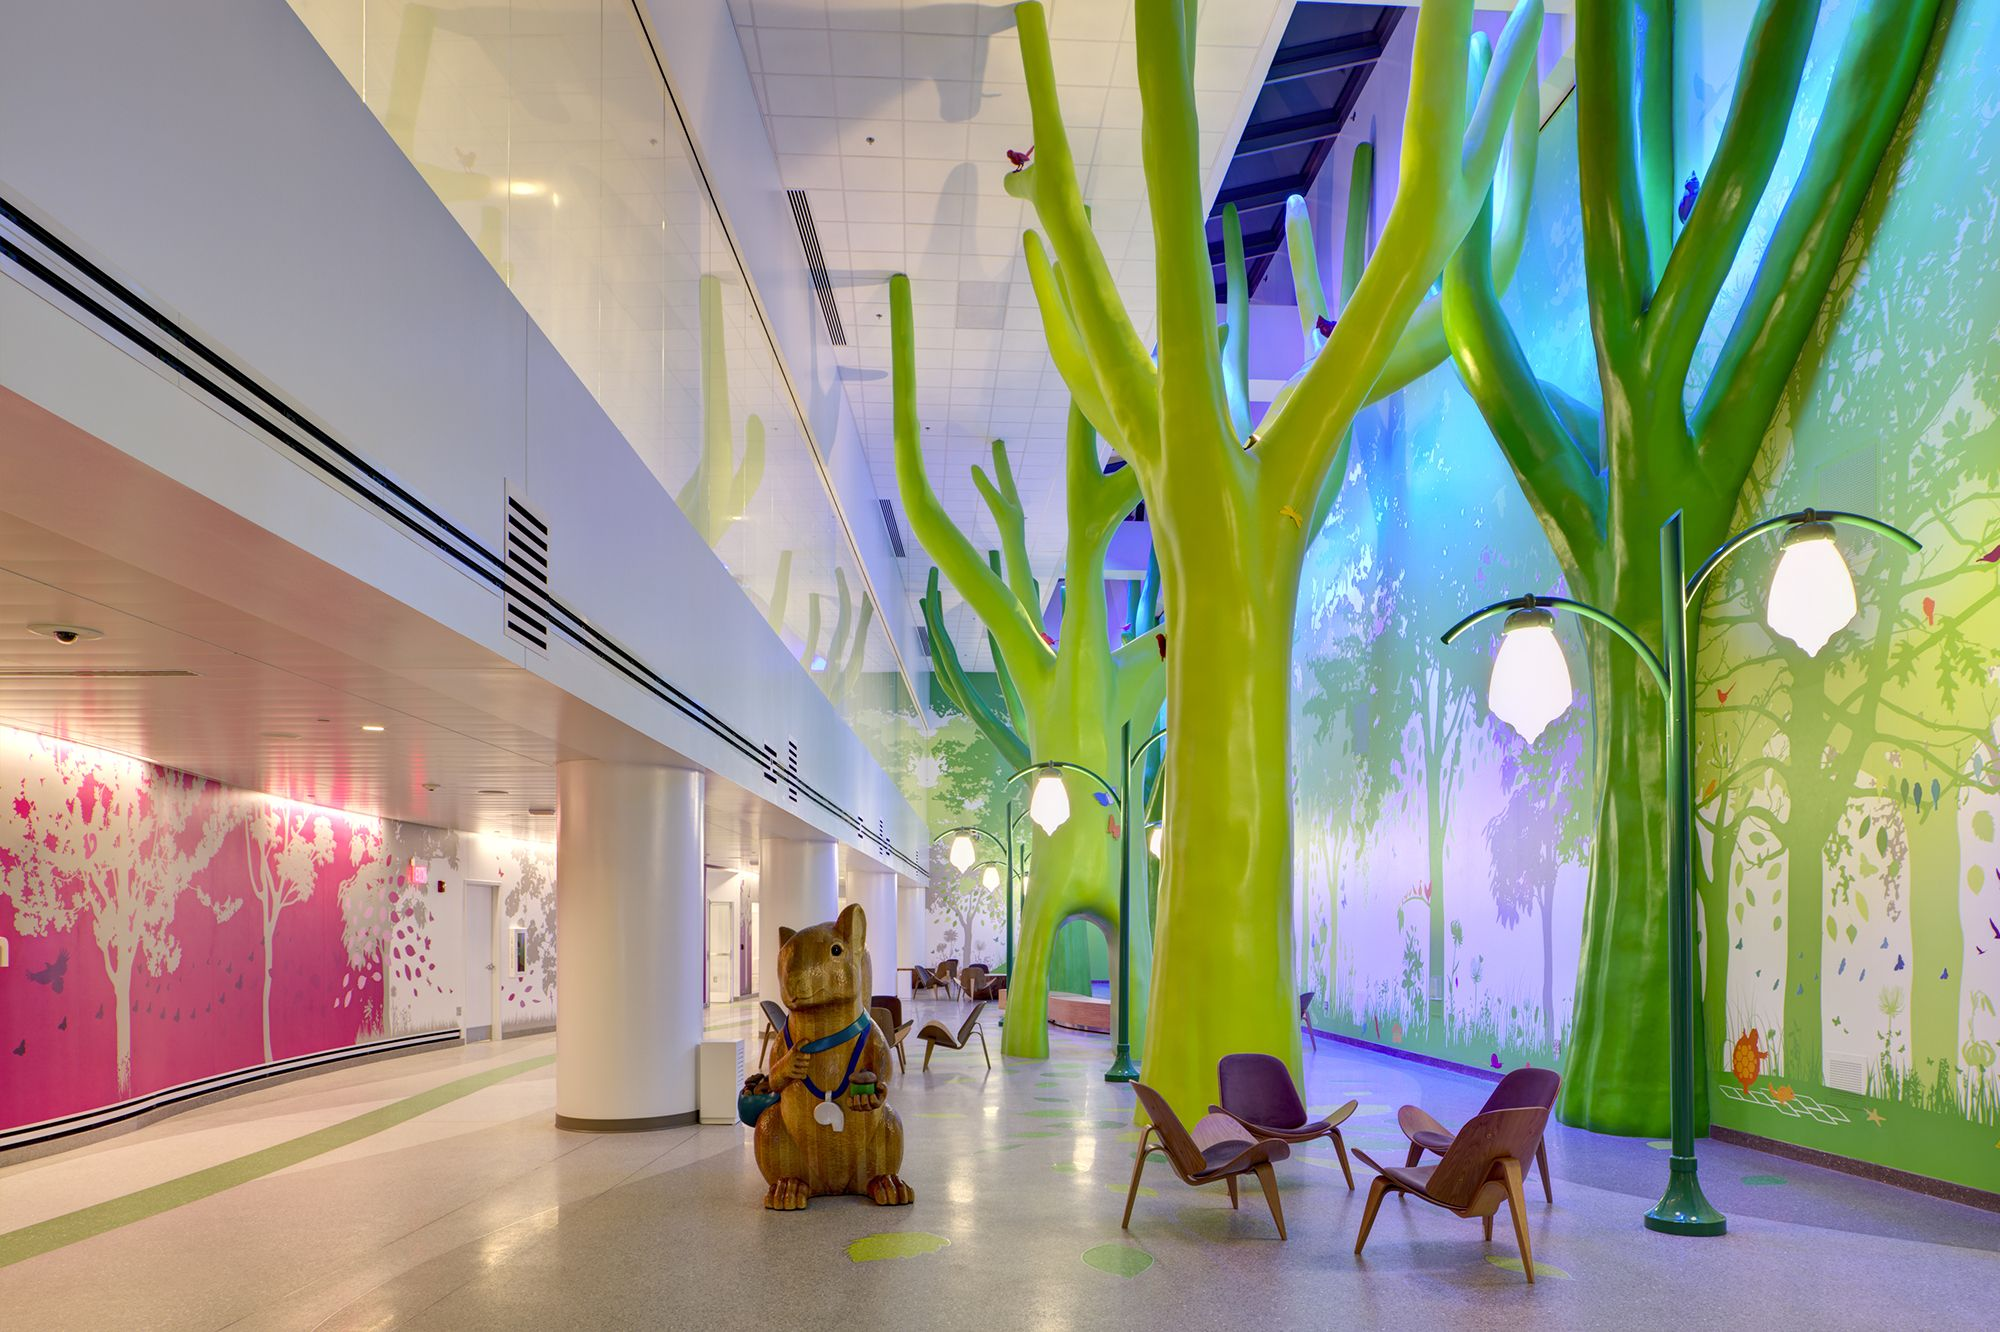 Nationwide Children's Hospital - Graphis | Zoo | Pinterest ...